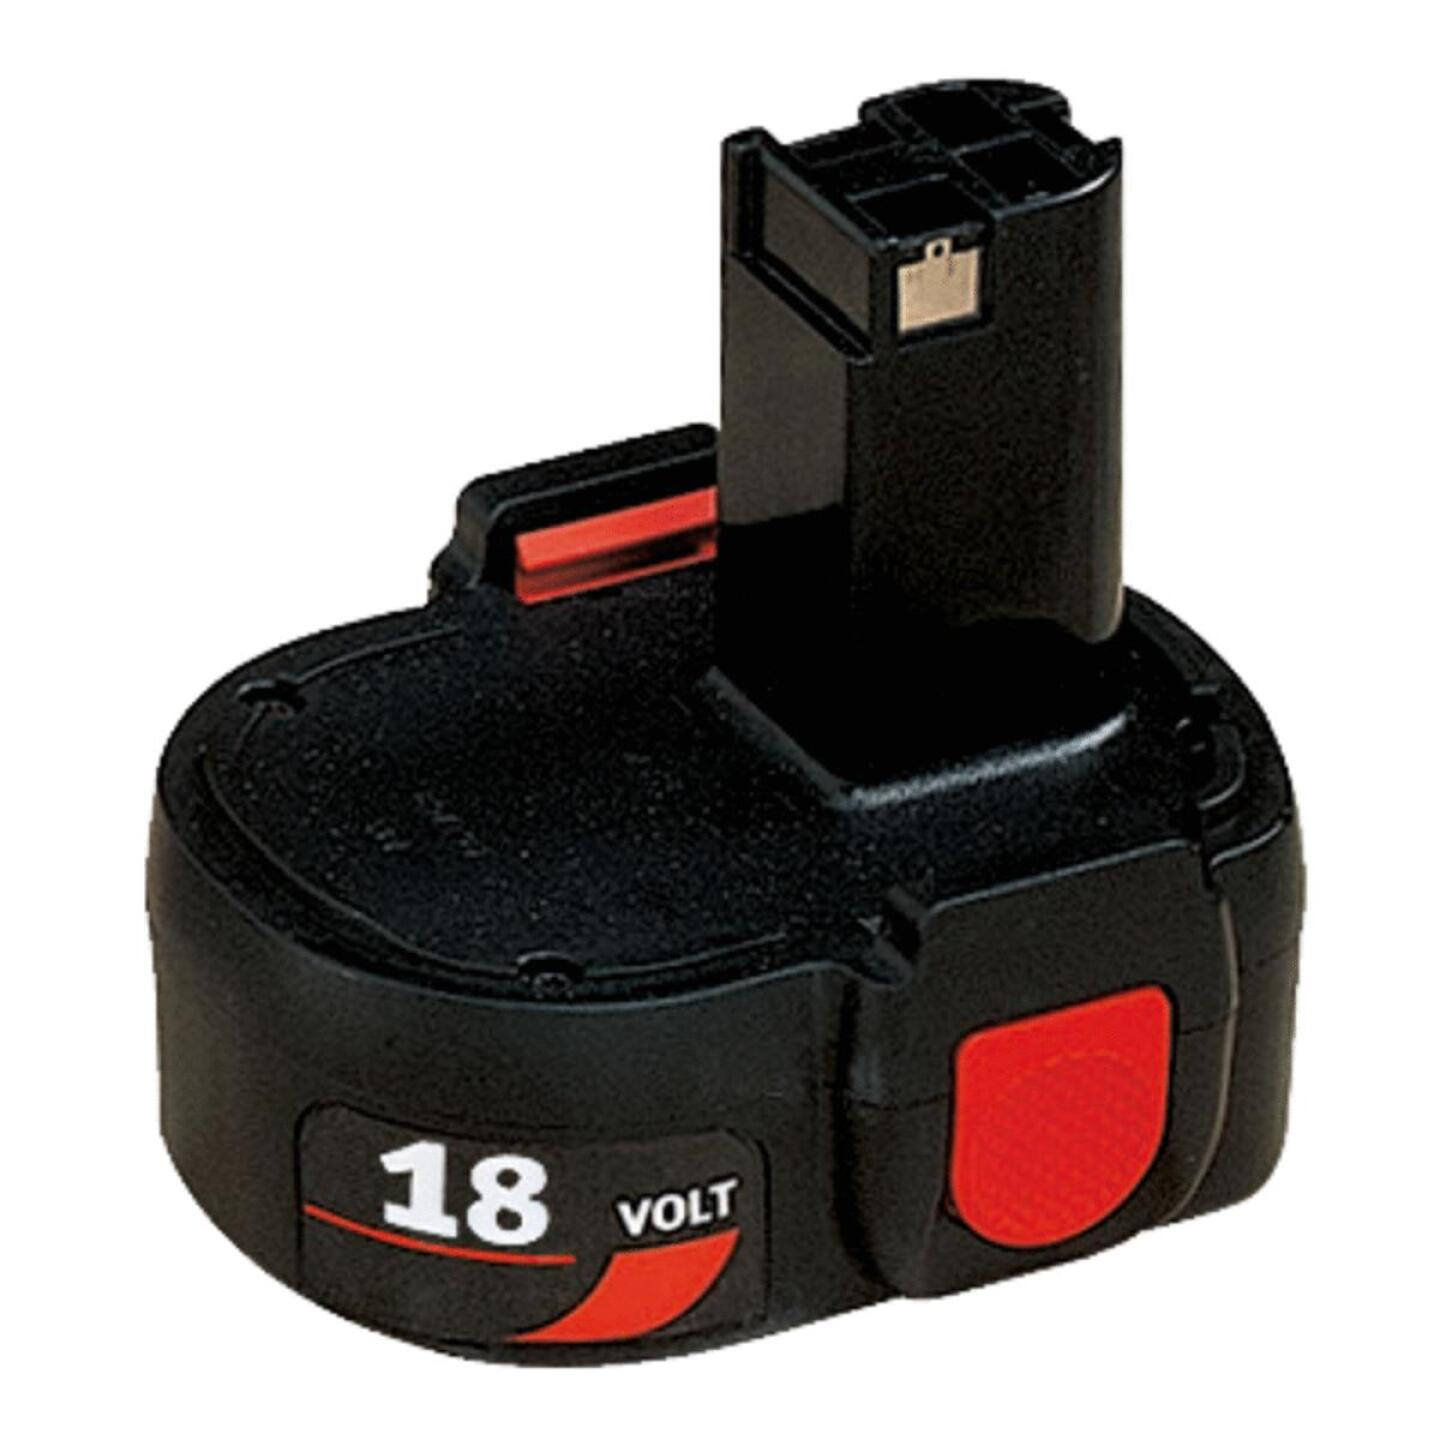 SKIL 18 Volt Nickel-Cadmium 1.2 Ah Pod Style Tool Battery Image 1